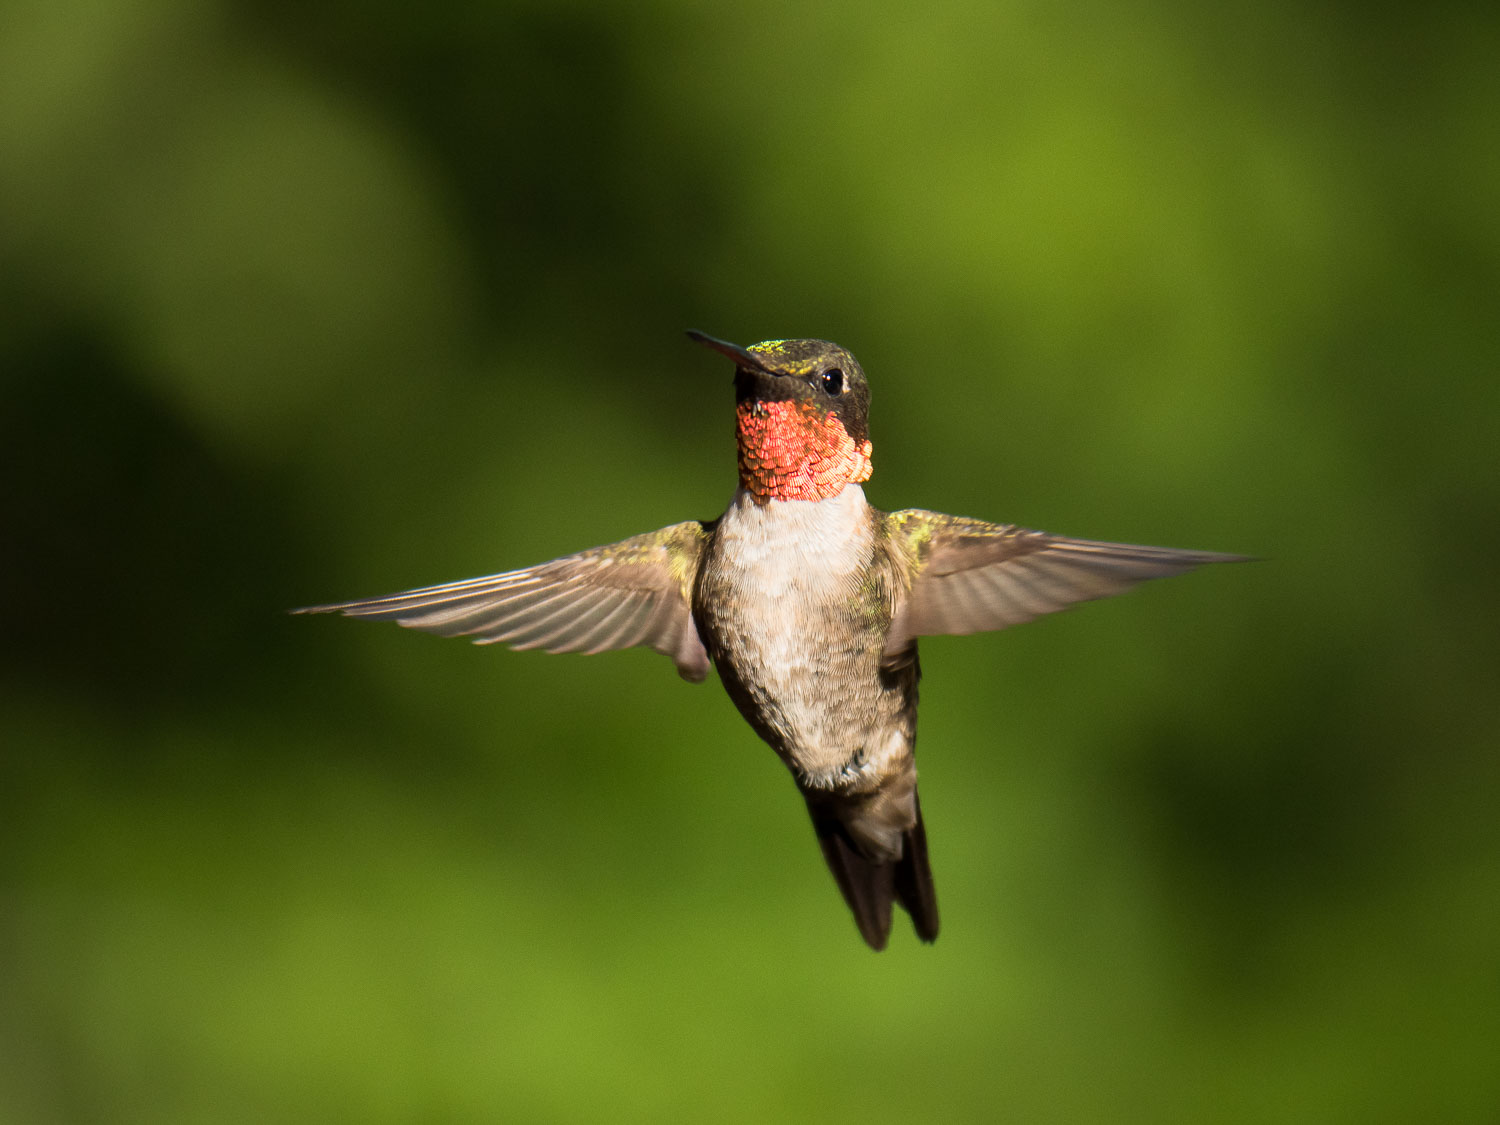 hummingbird in flight - Micro four-thirds for wildlife